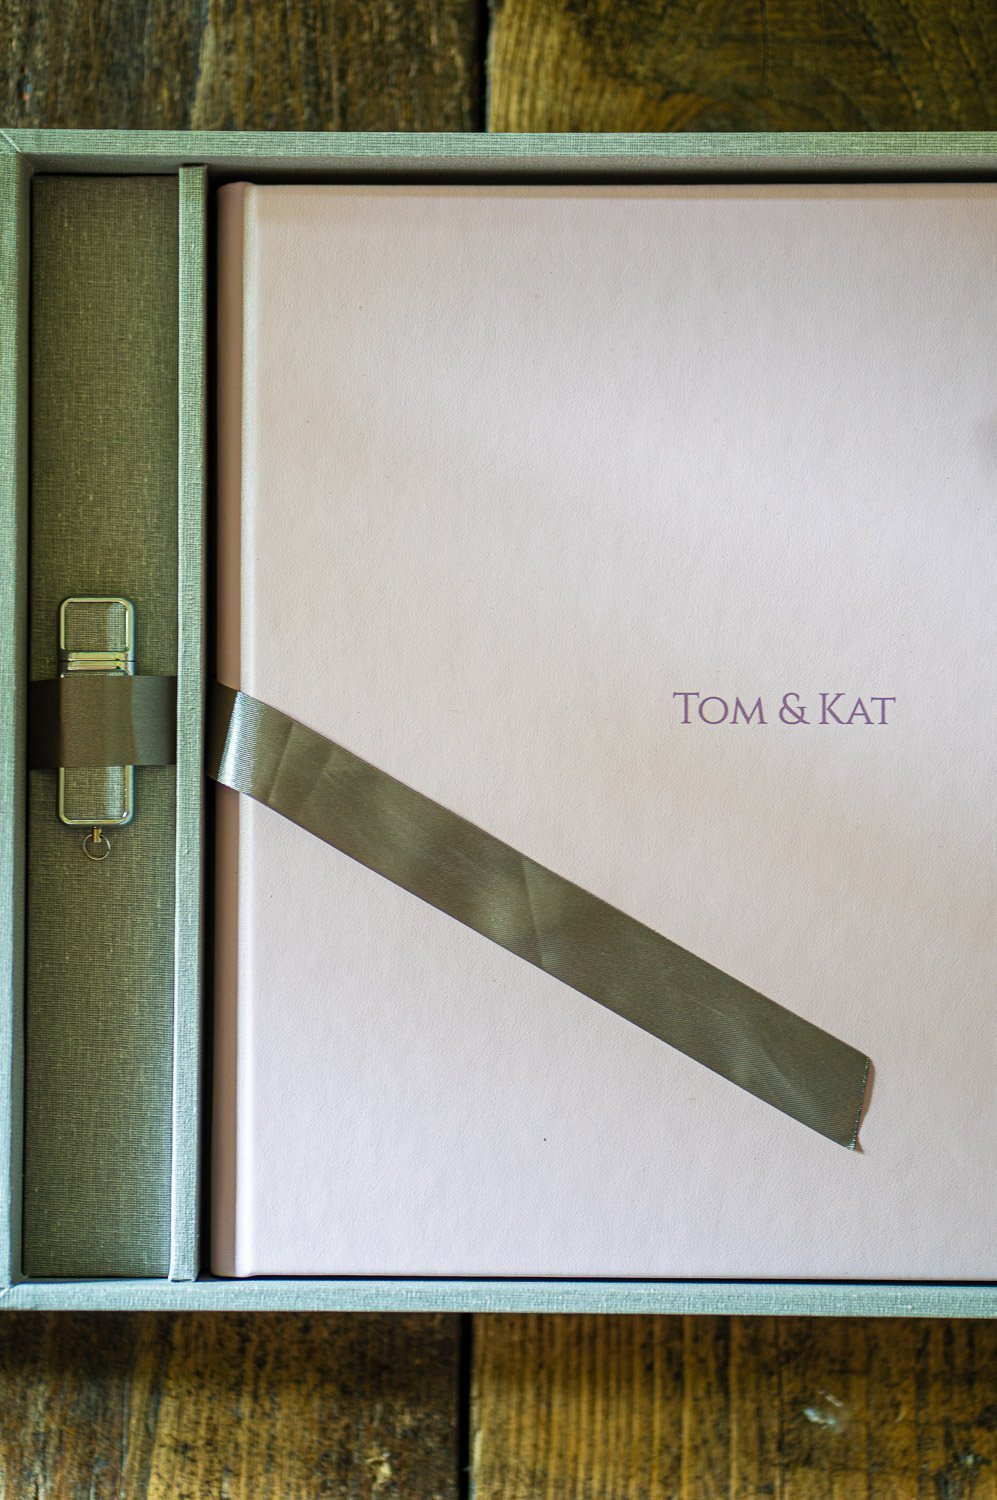 Gorgeous presentation box, opened showing an album in pink, with the inscription Tom & Kat